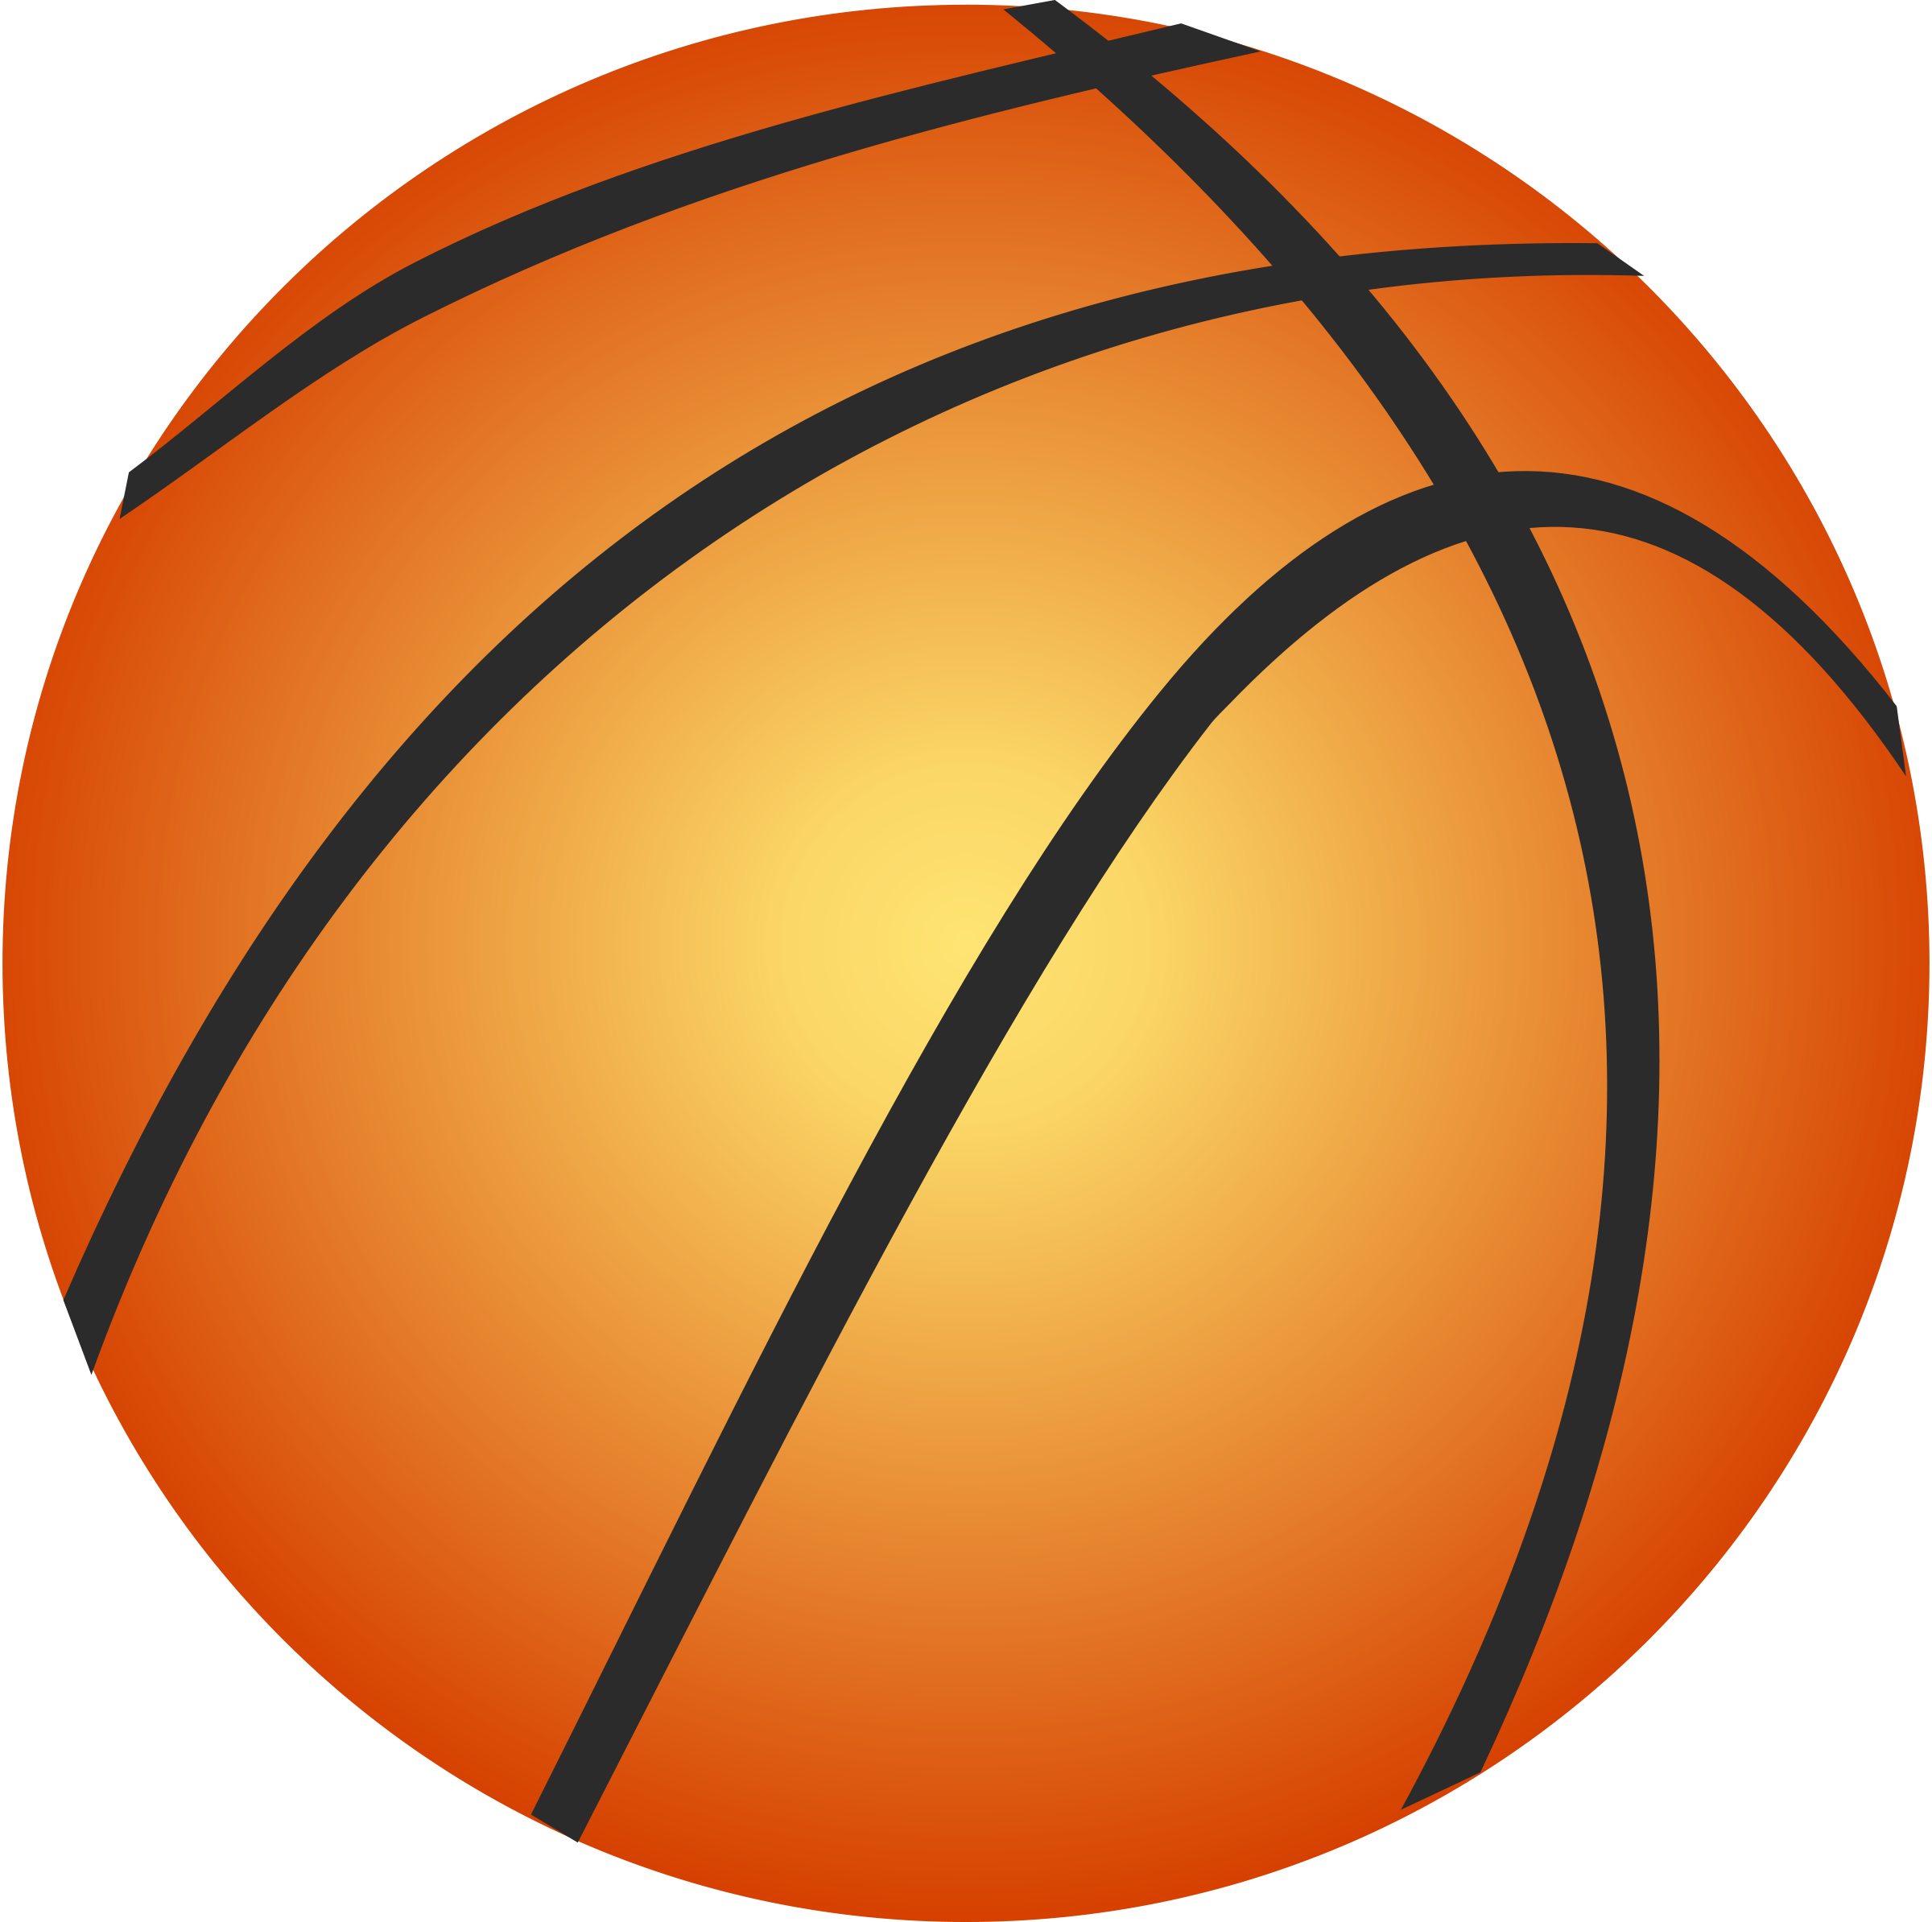 Half Basketball Outline - ClipArt Best